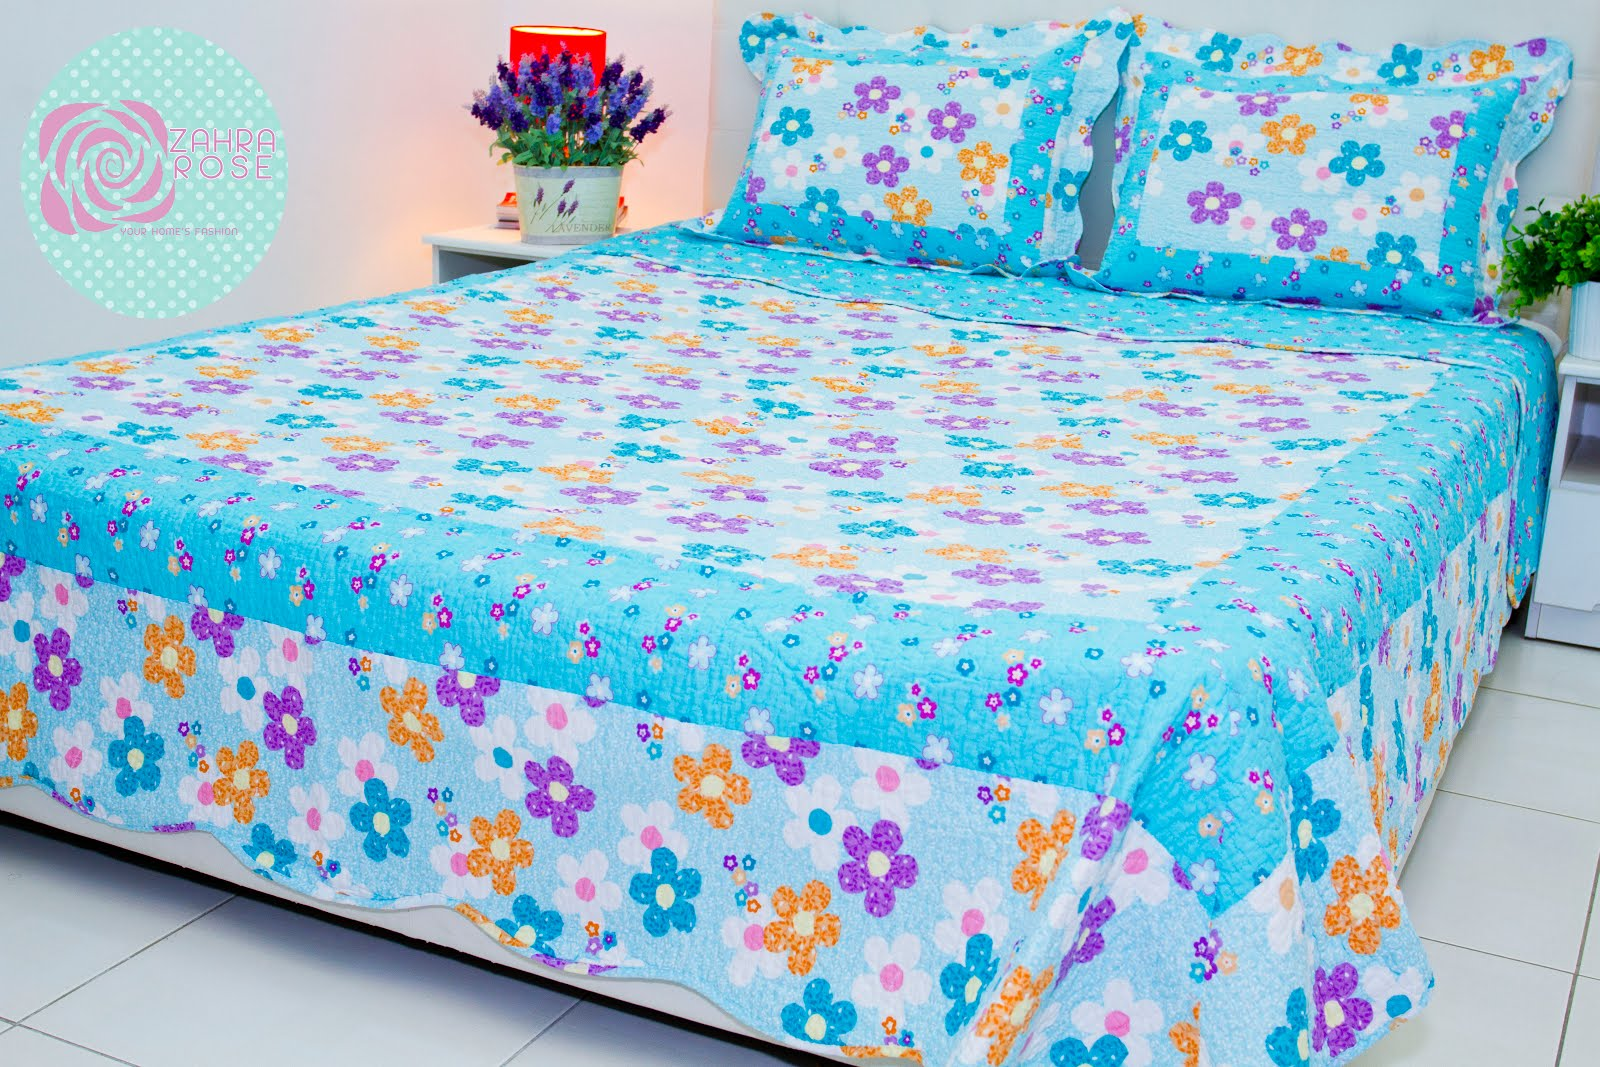 Patchwork bed sheets patterns - Zr 012